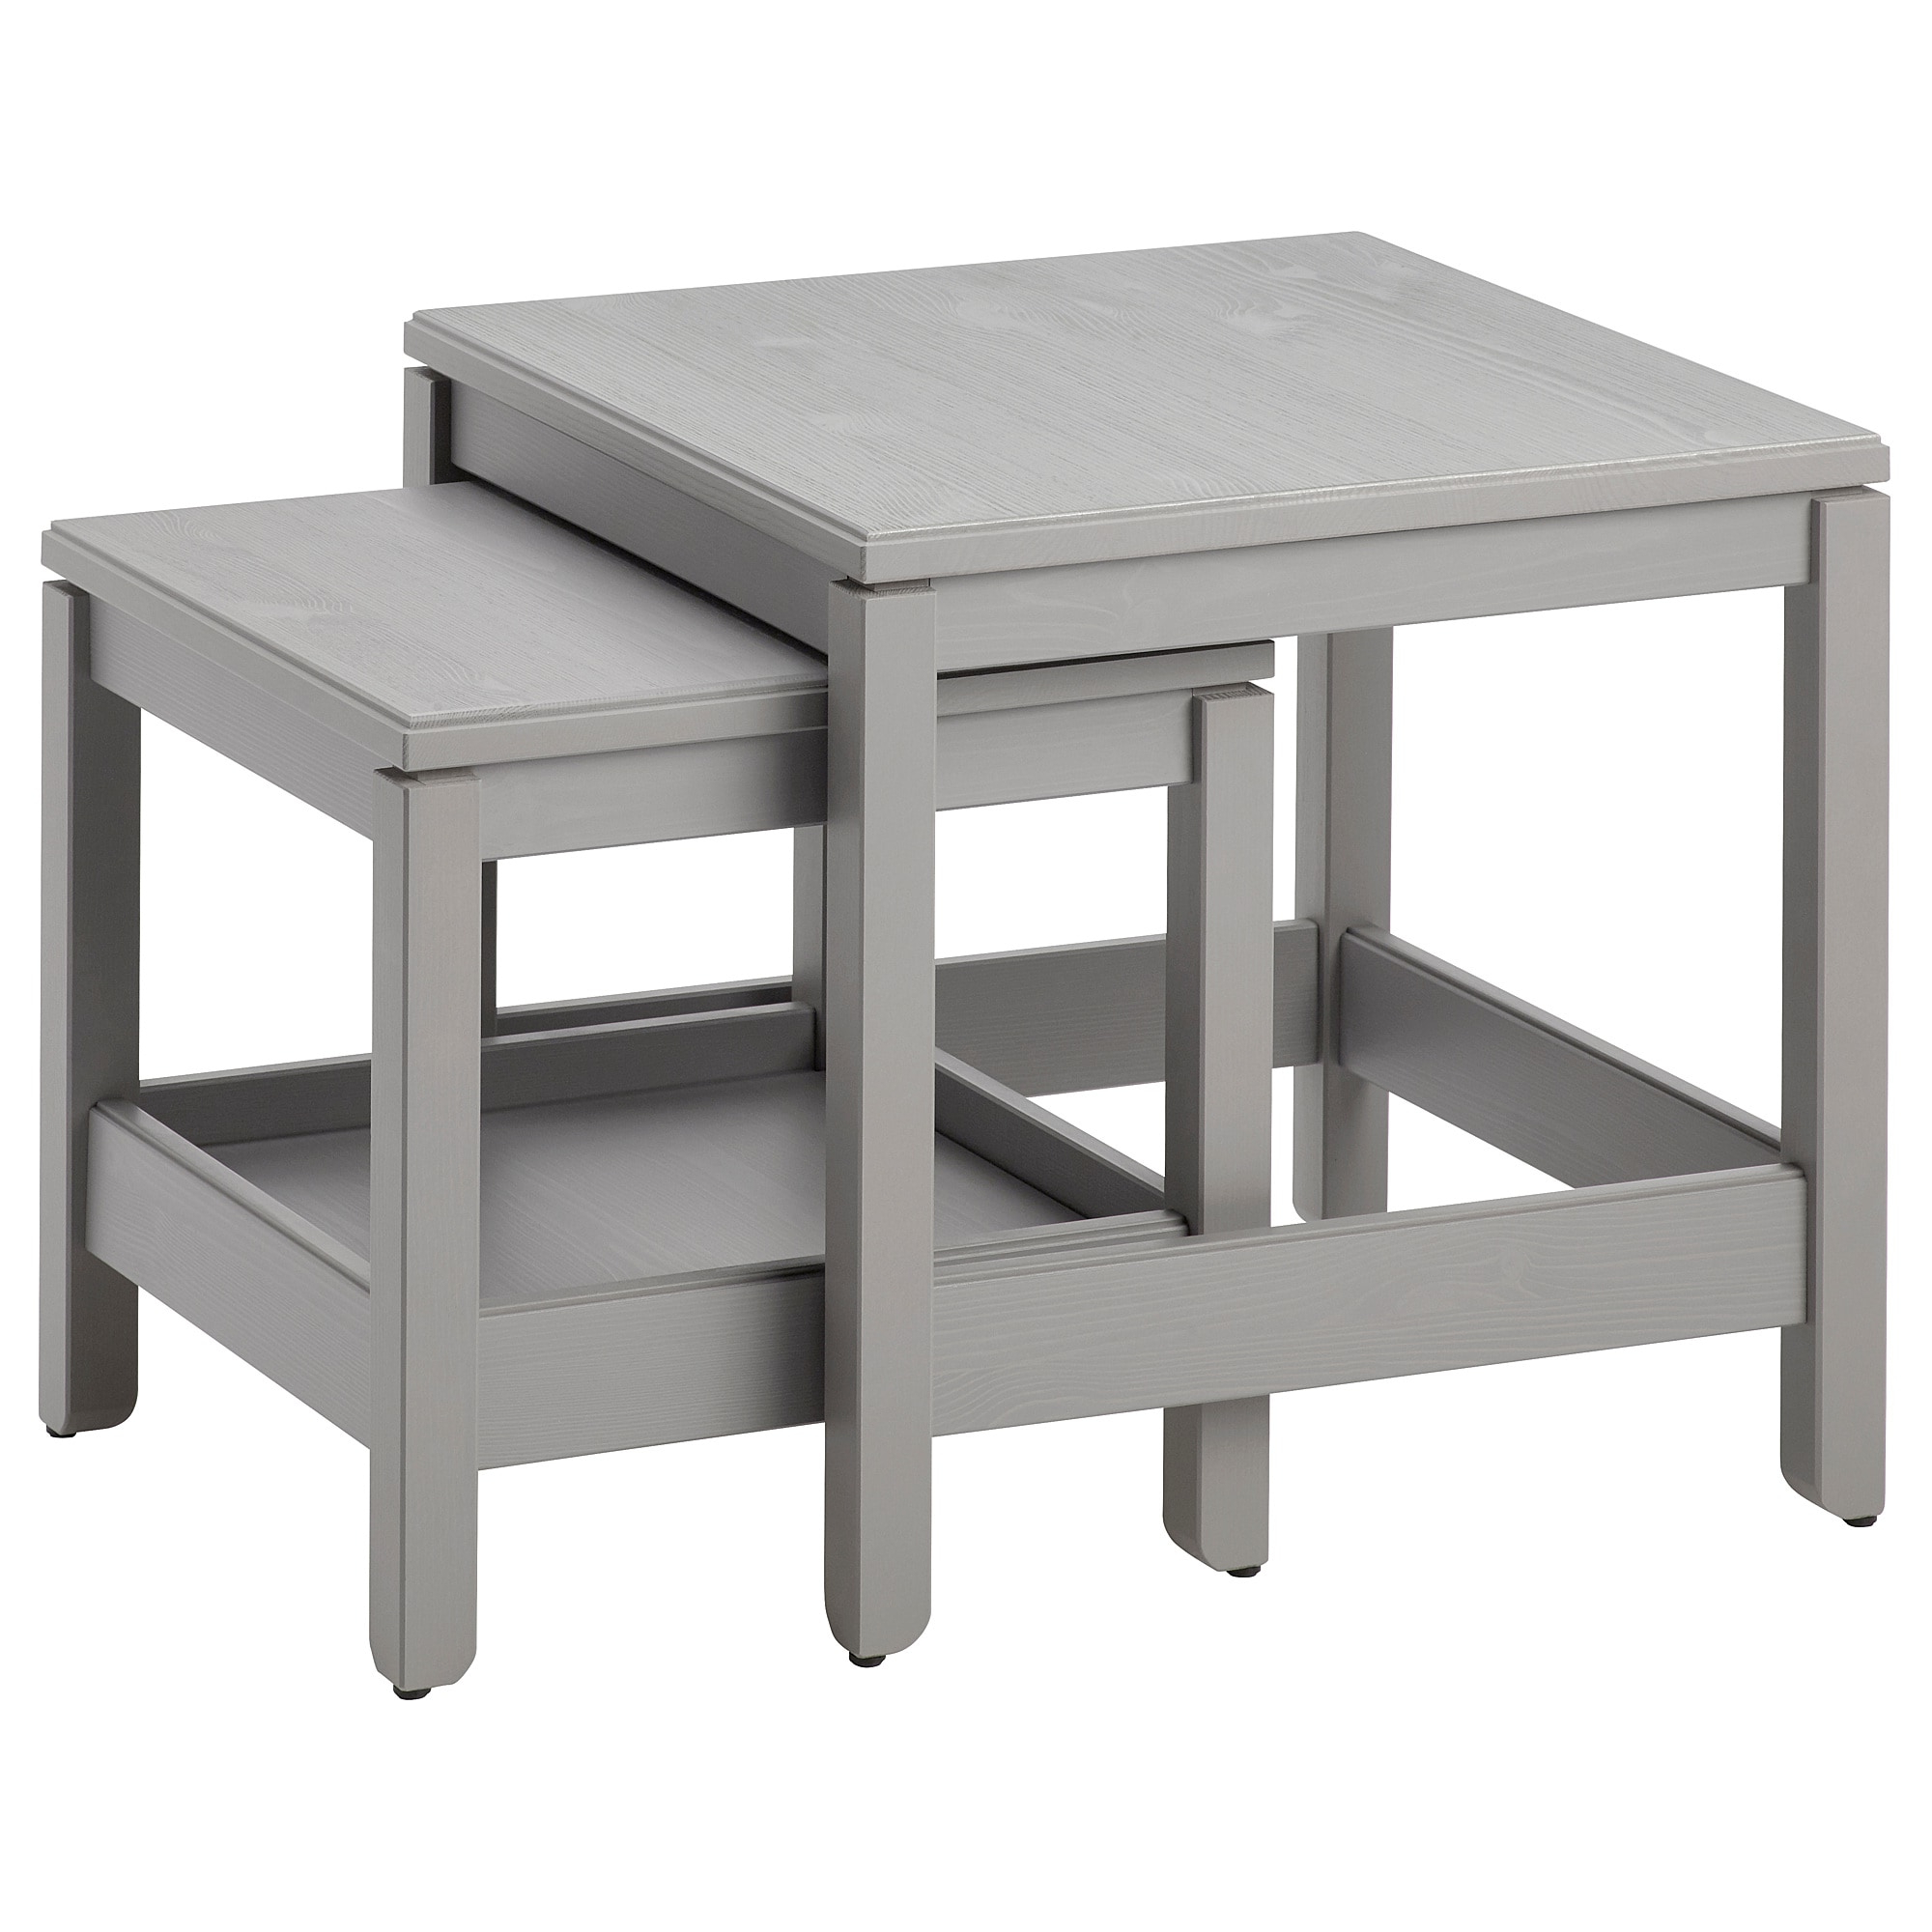 Ikea Throughout Trendy Cara Cocktail Tables (Gallery 12 of 20)